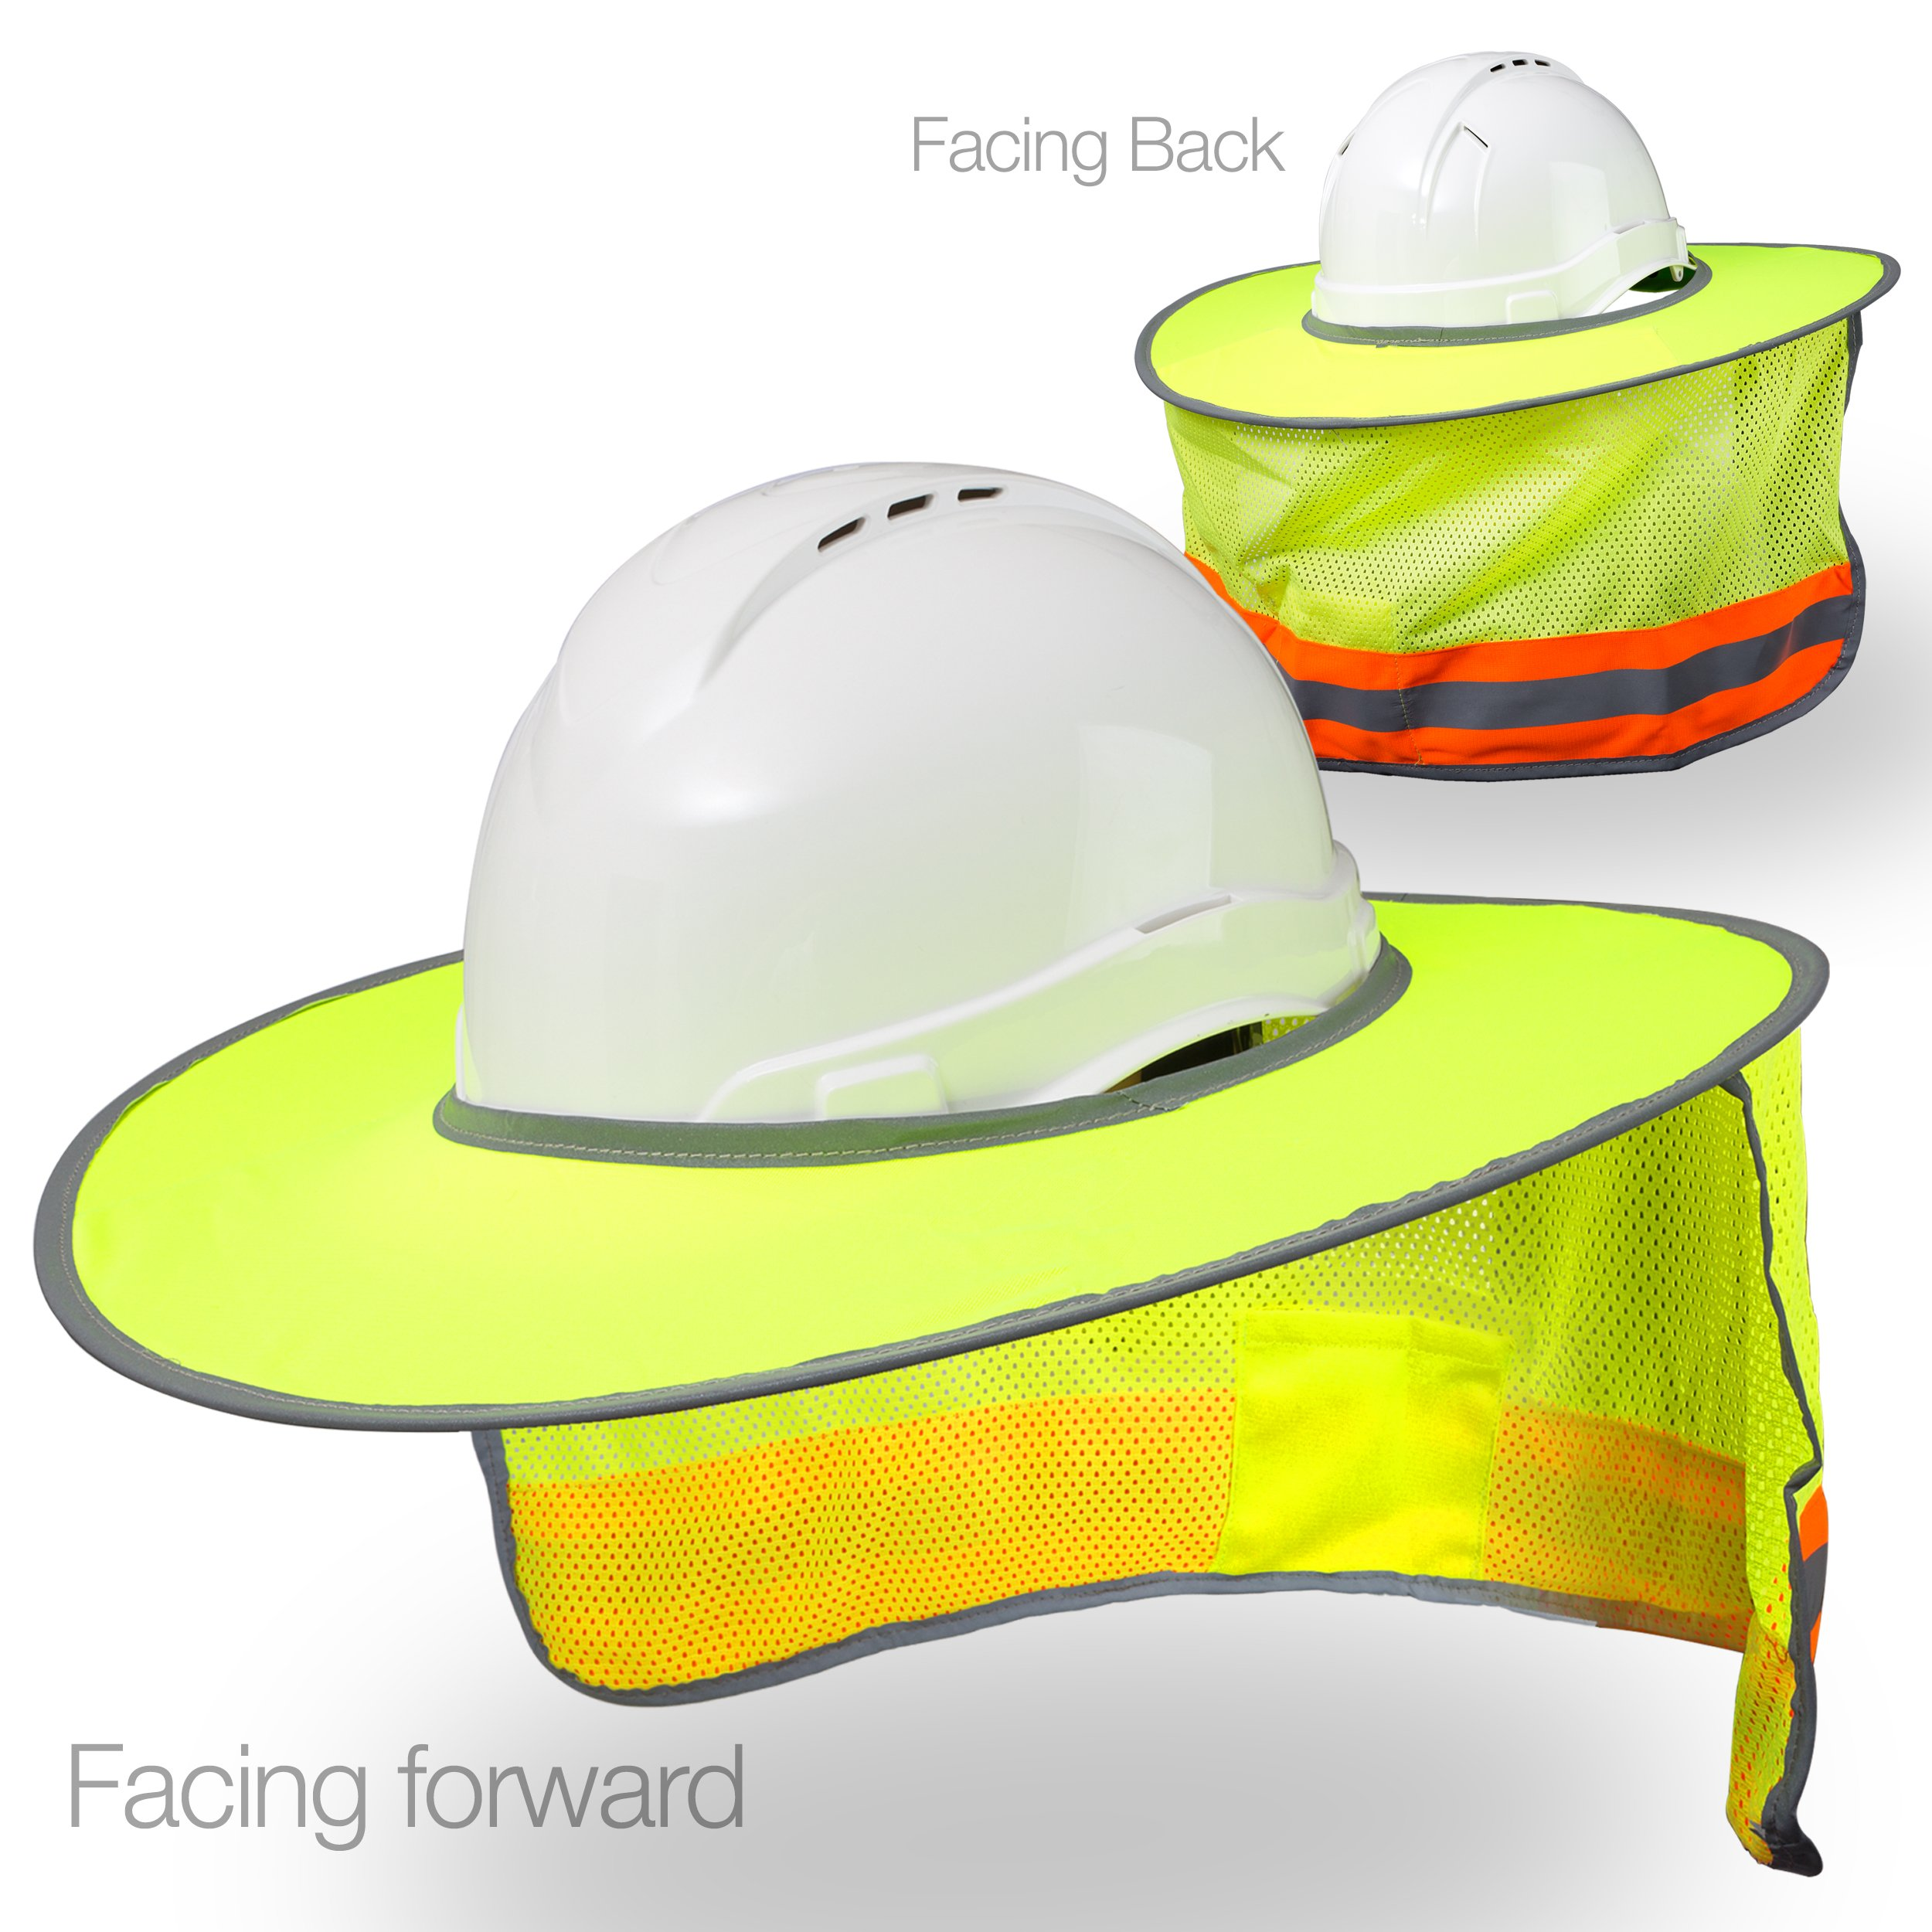 Hard Hat Sun Shield - High Visibility, Reflective, Full Brim Mesh Sun Shade Protector (Hard Hat Not Included) (Yellow/Lime) by Tapix